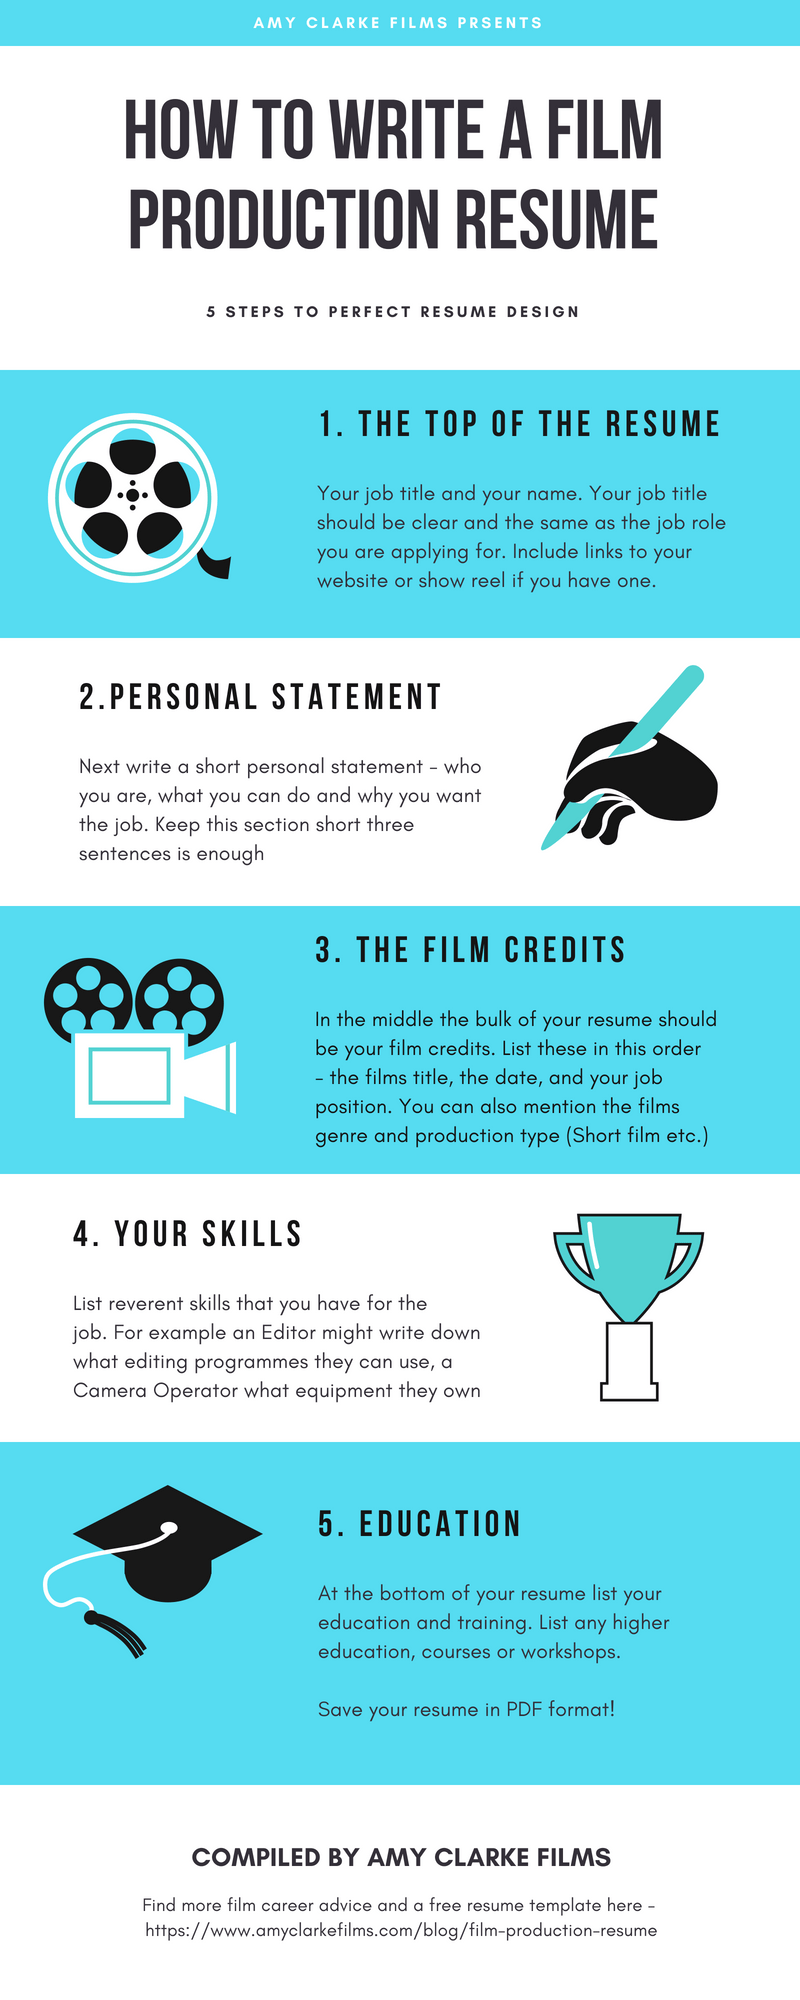 Filmmaker Resume Template 10 Steps To Writing Your Film Production Resume Amy Clarke Films